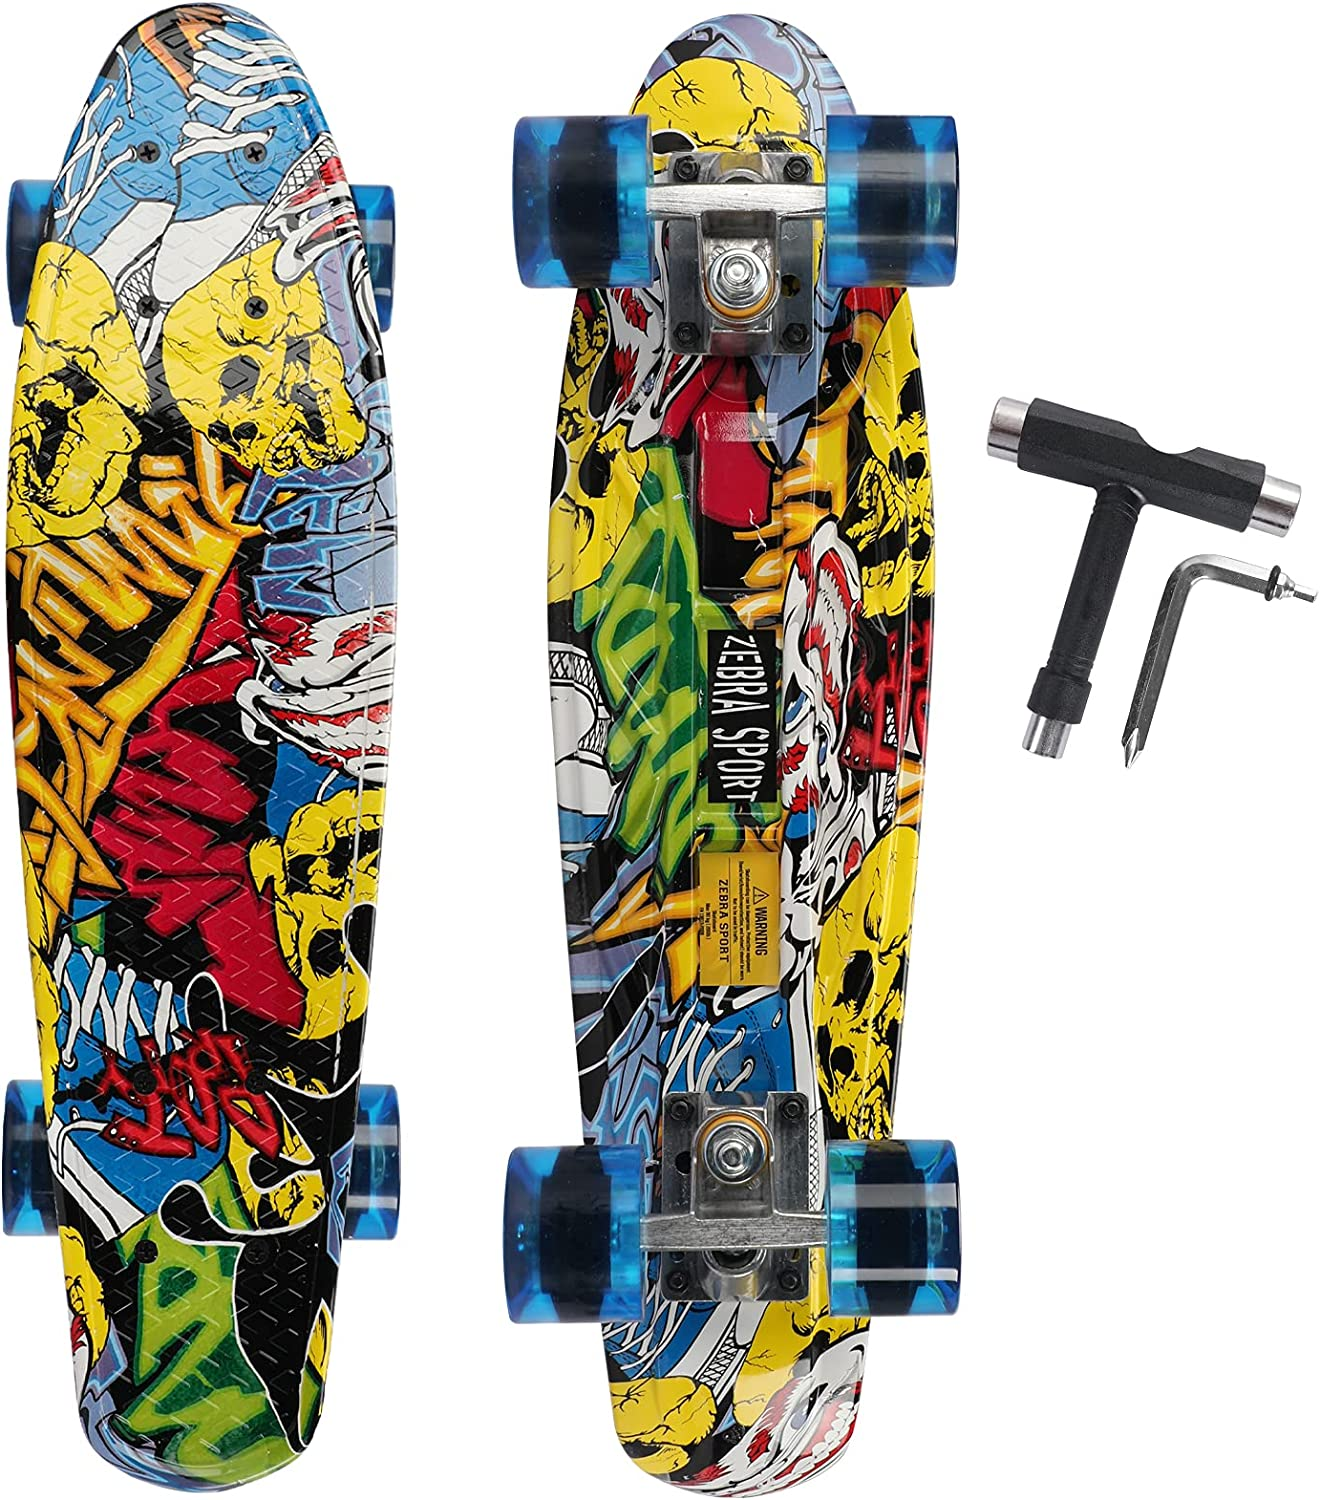 ZEBRA SPORTS 22 Inch Skateboards Max 77% OFF Kids Boys Quantity limited for Beginners Girls